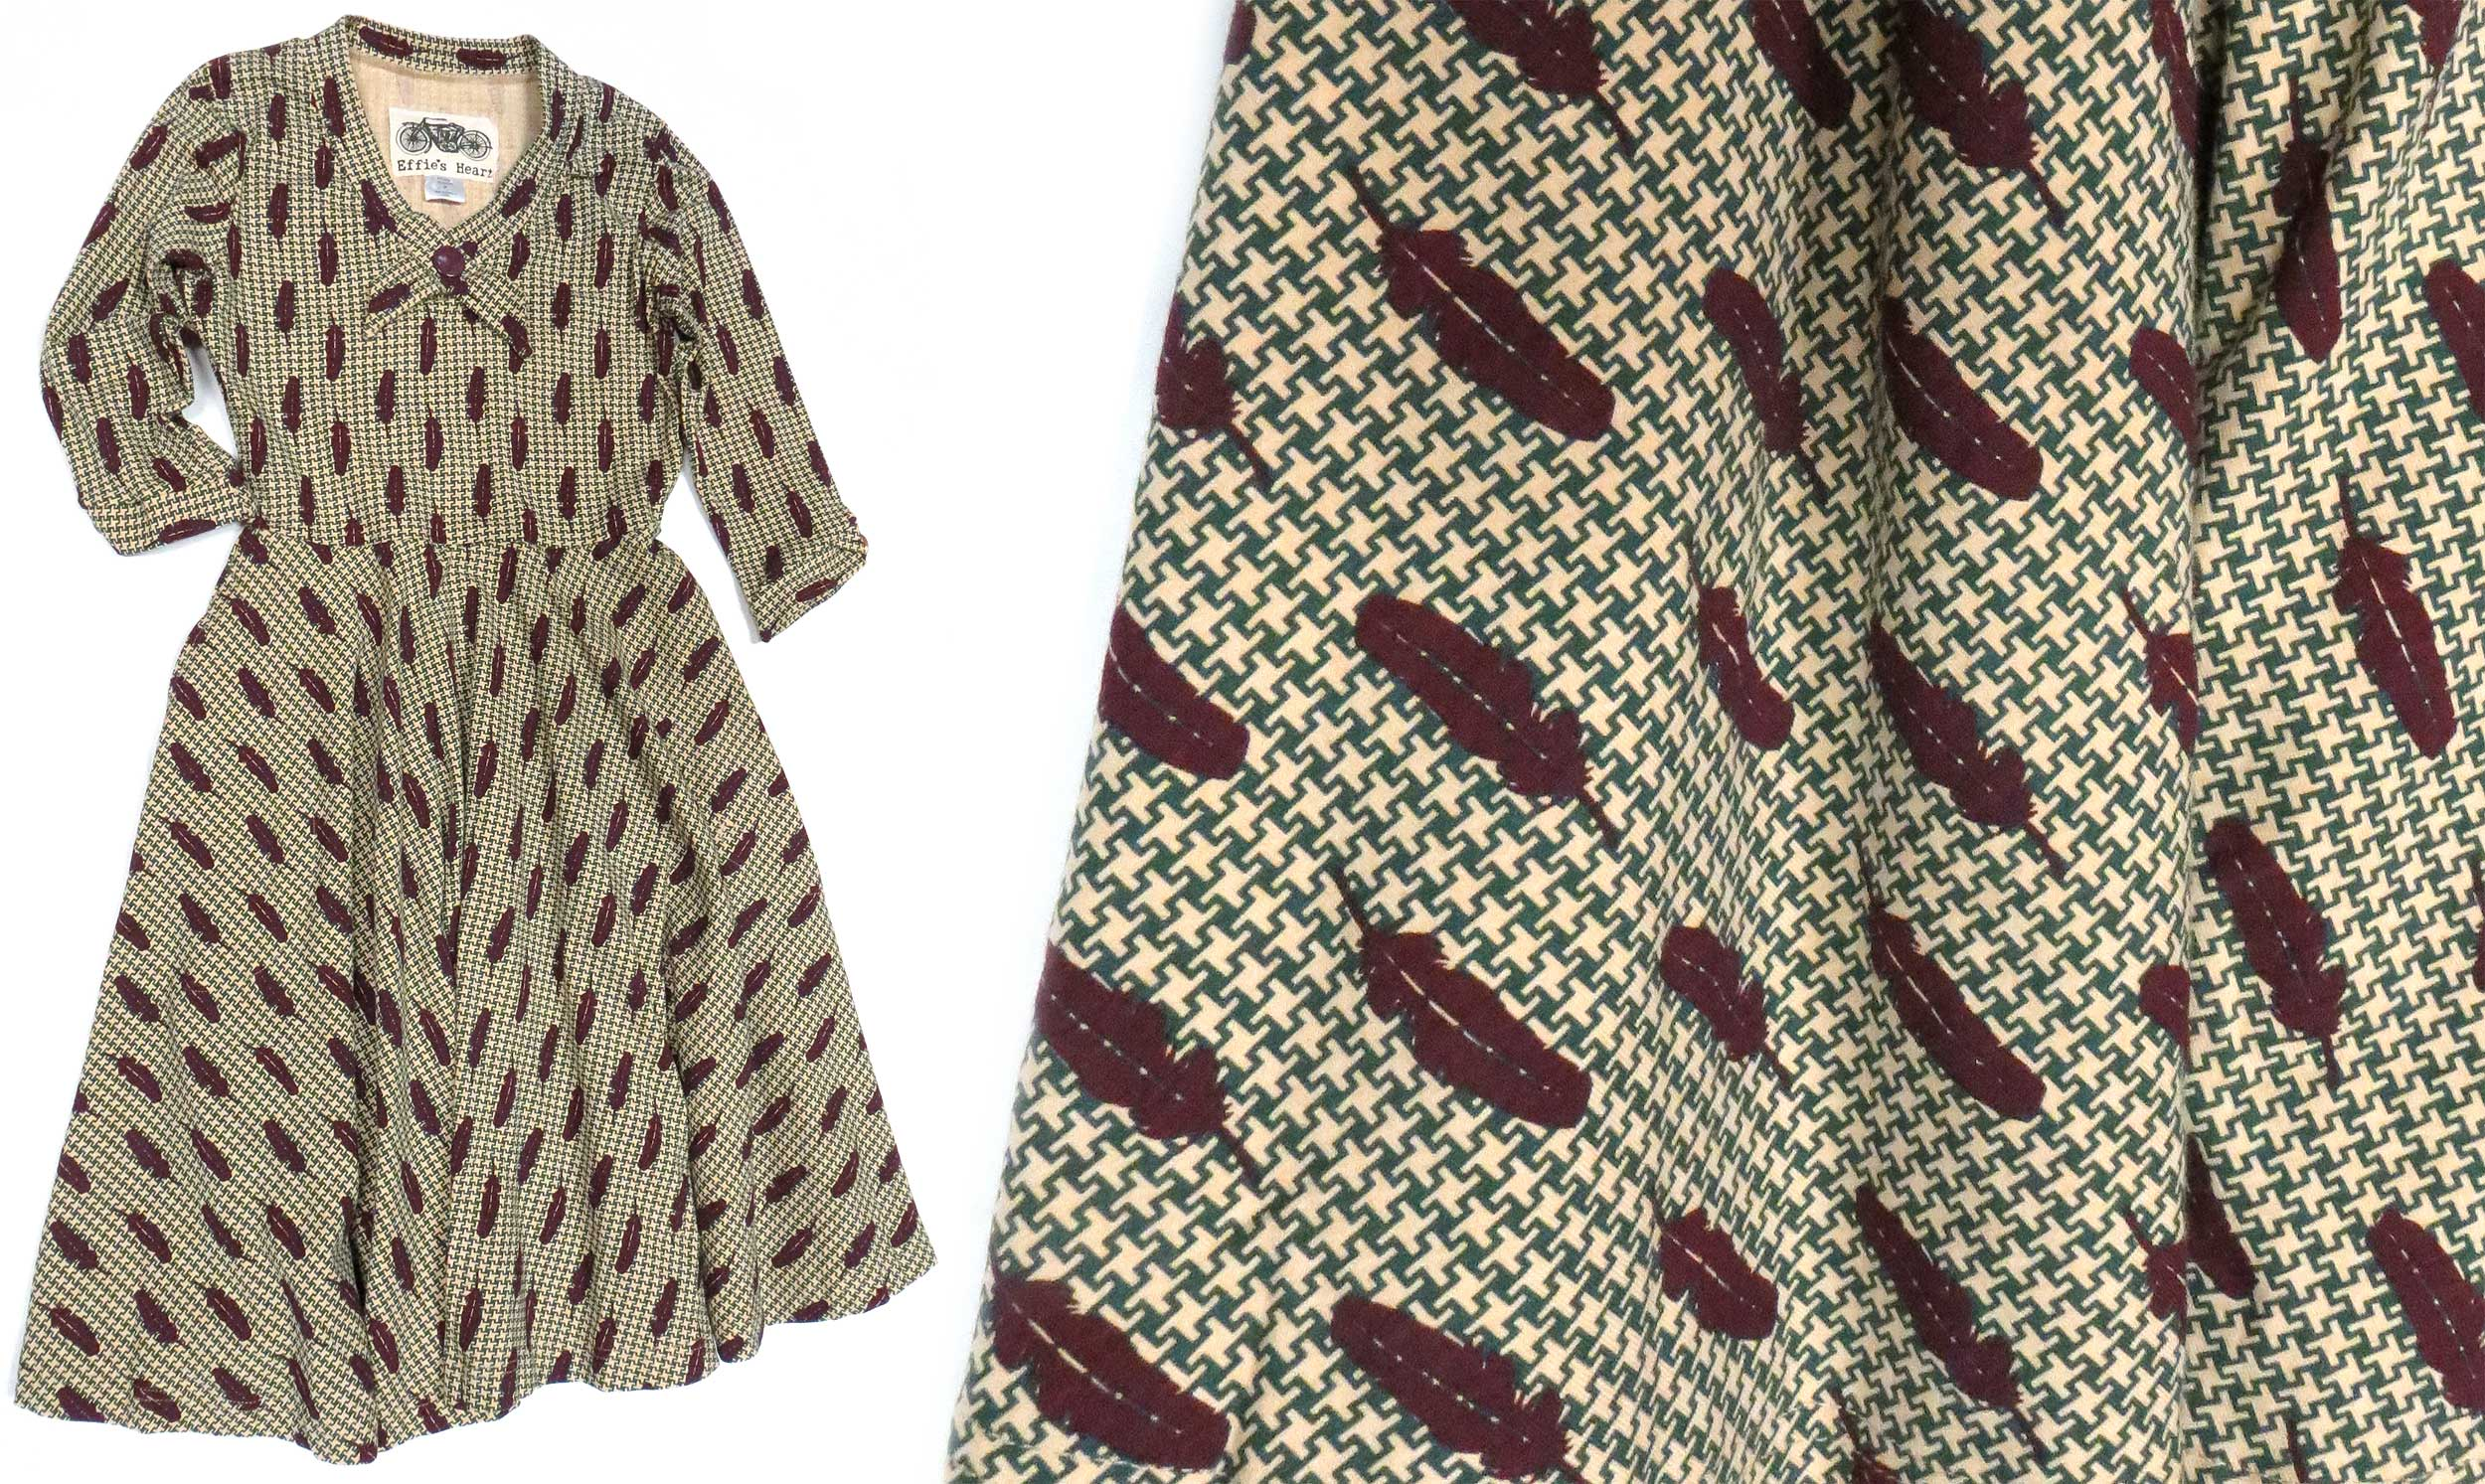 Feather & Houndstooth Dress